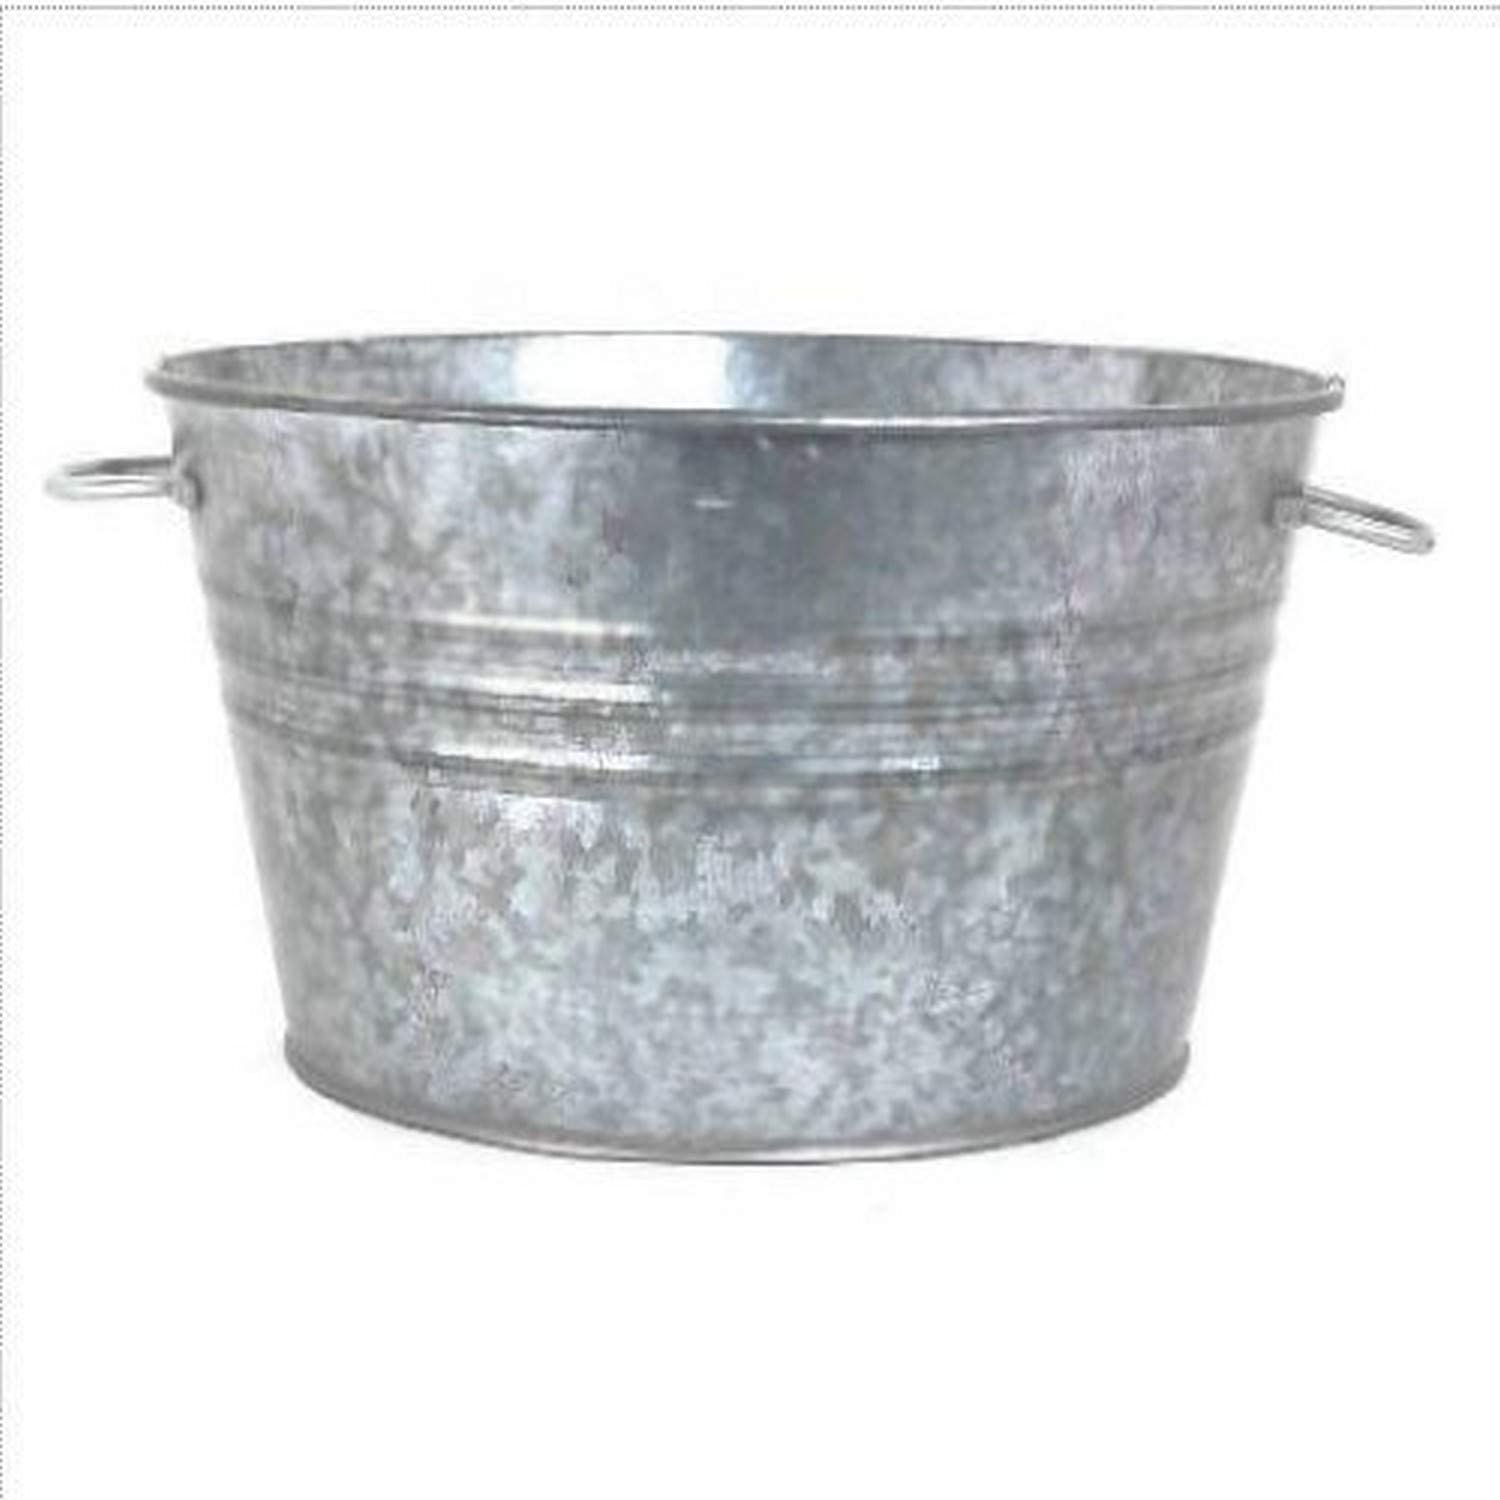 Houston International 6087 19-Inch Steel Planter/Tub, Silver